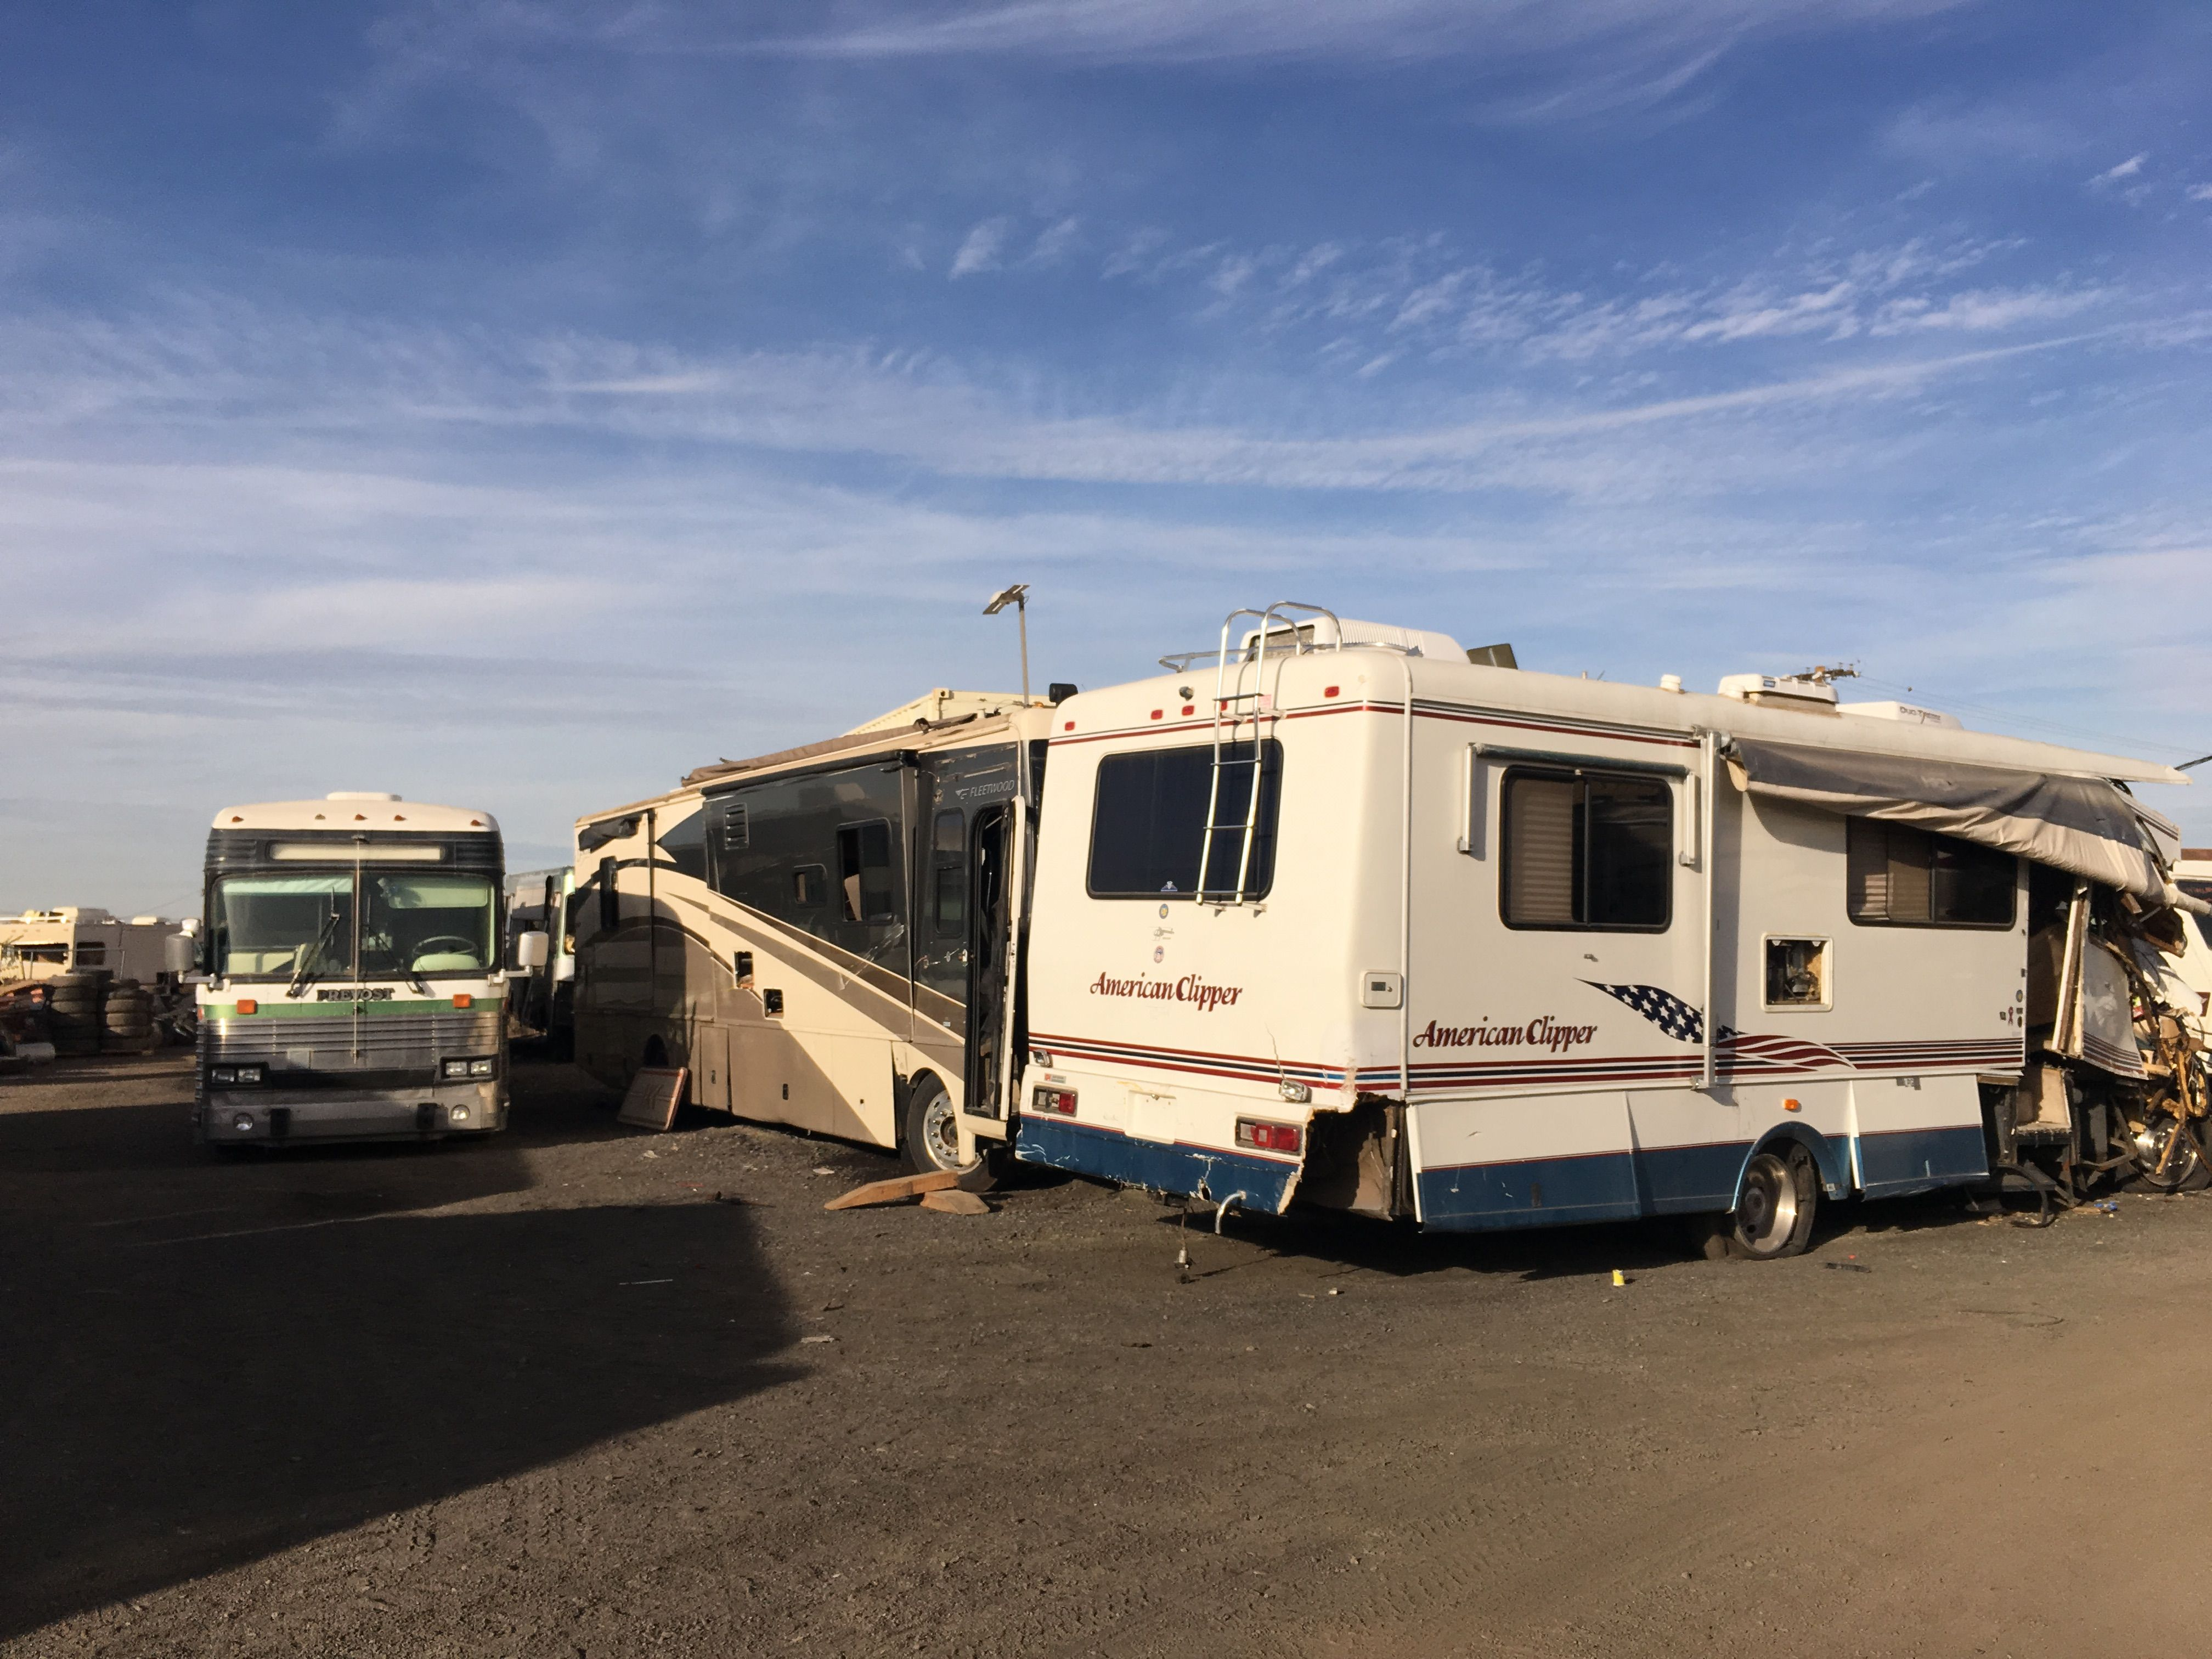 American clipper rv parts at arizona rv salvage